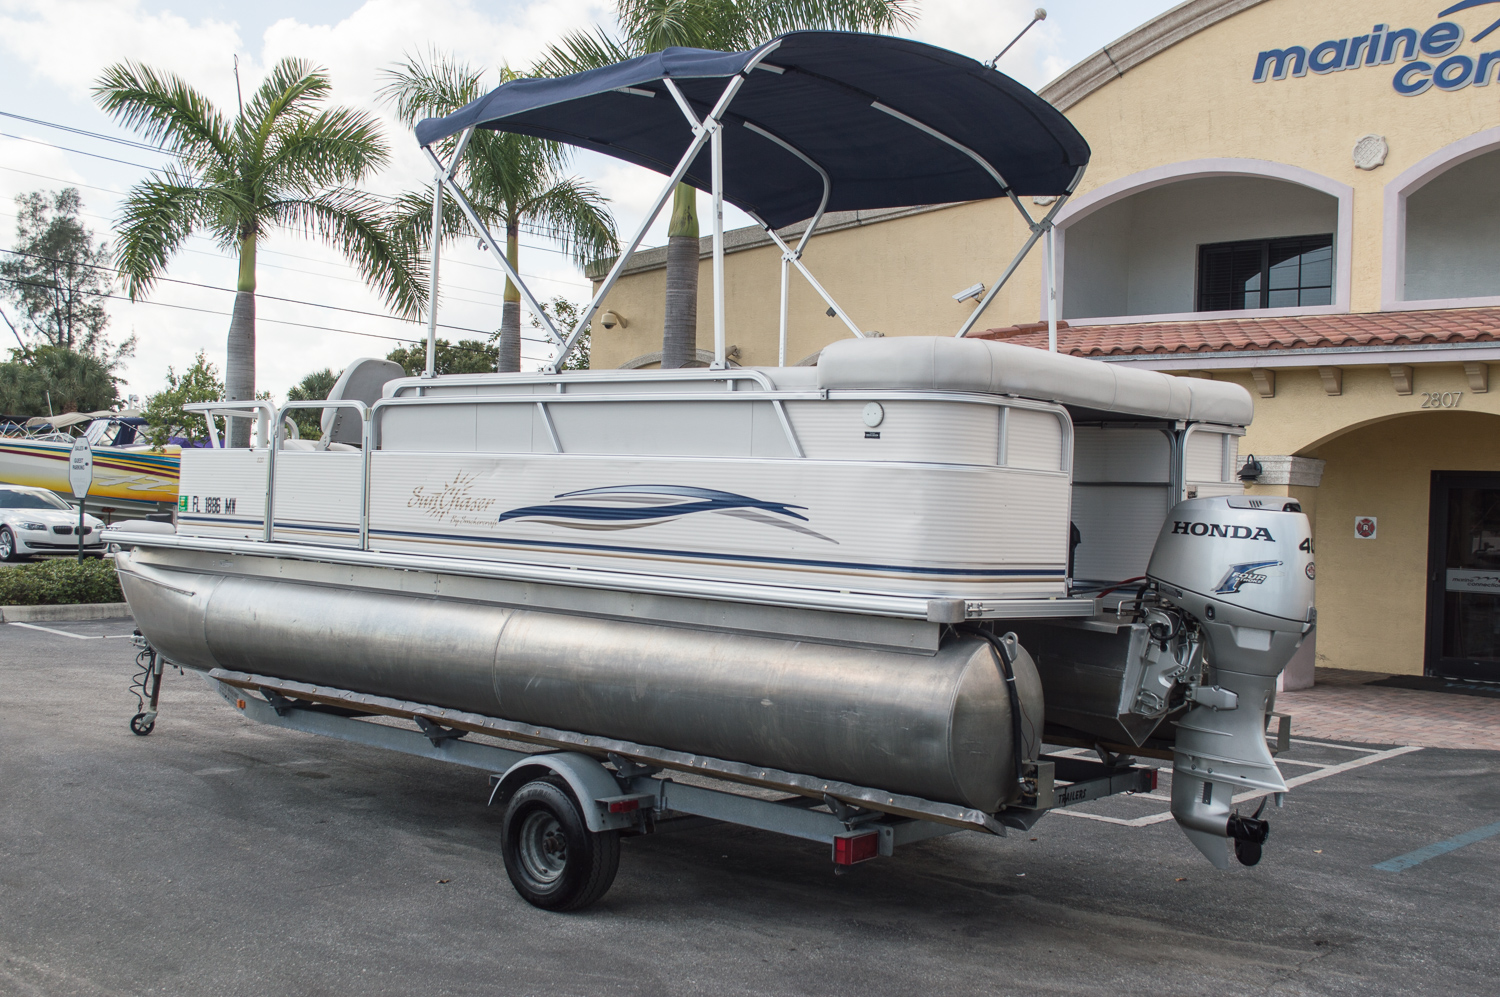 Used 2005 sun chaser 820 fish re pontoon boat for sale in for Used fishing pontoon boats for sale